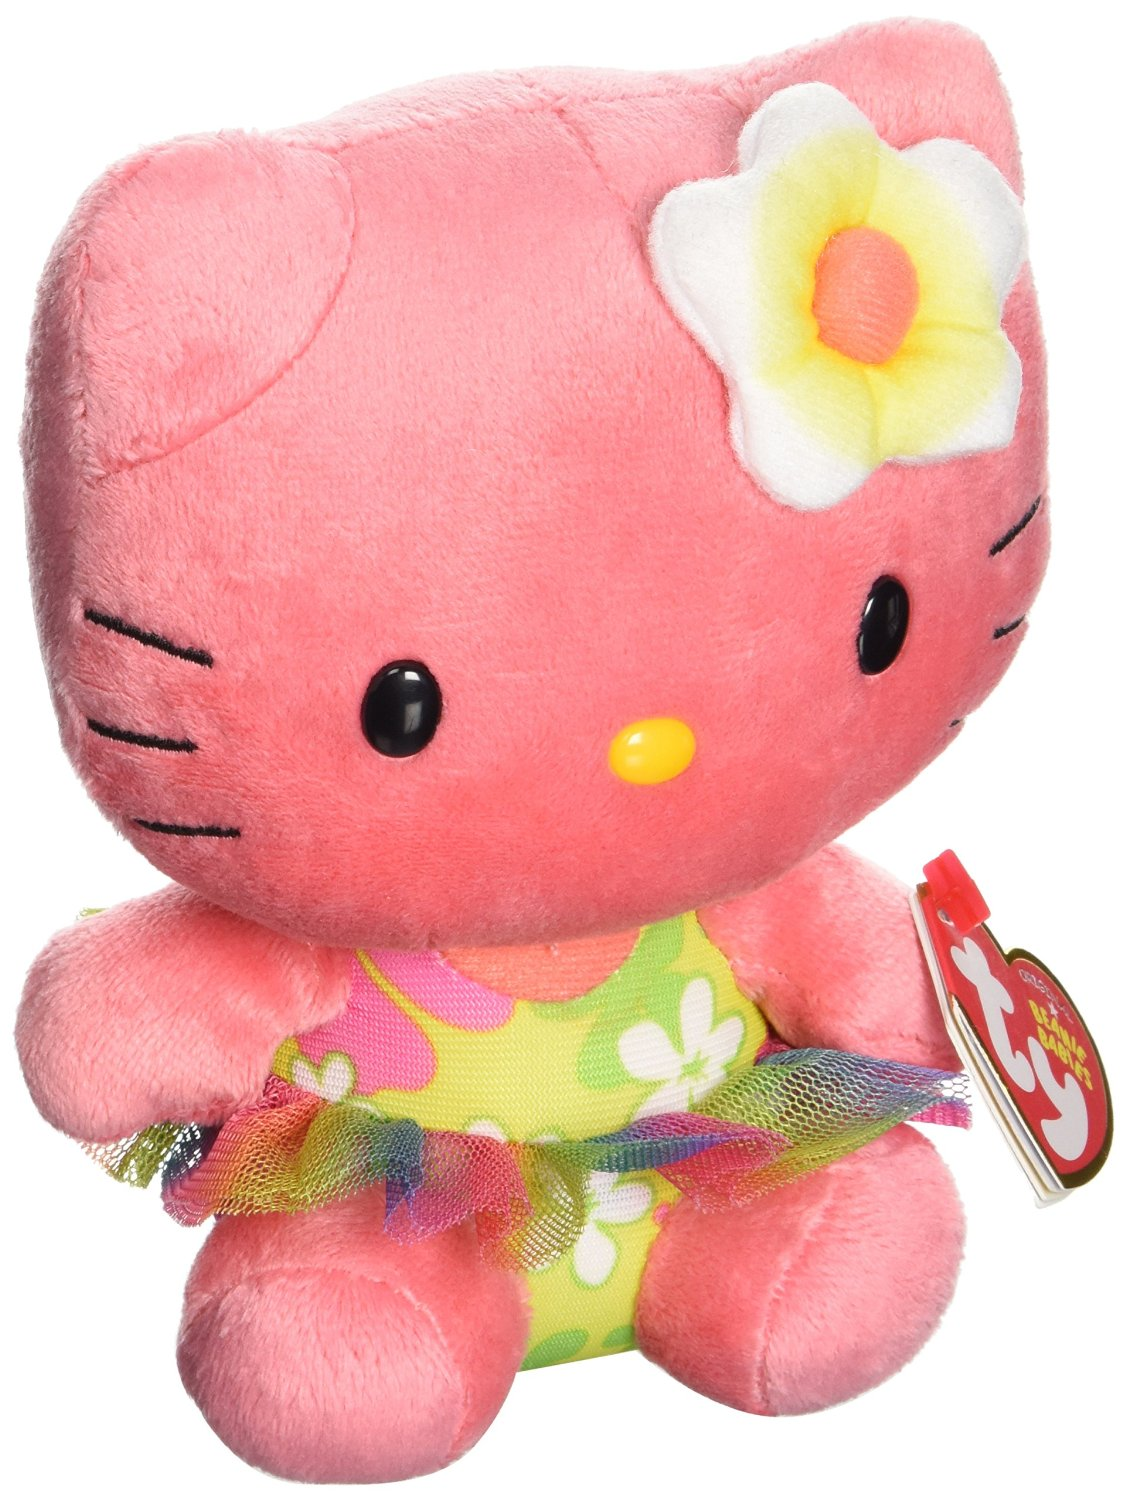 ec90d6084ea Get Quotations · Ty Beanie Babies Hello Kitty Rose Plush